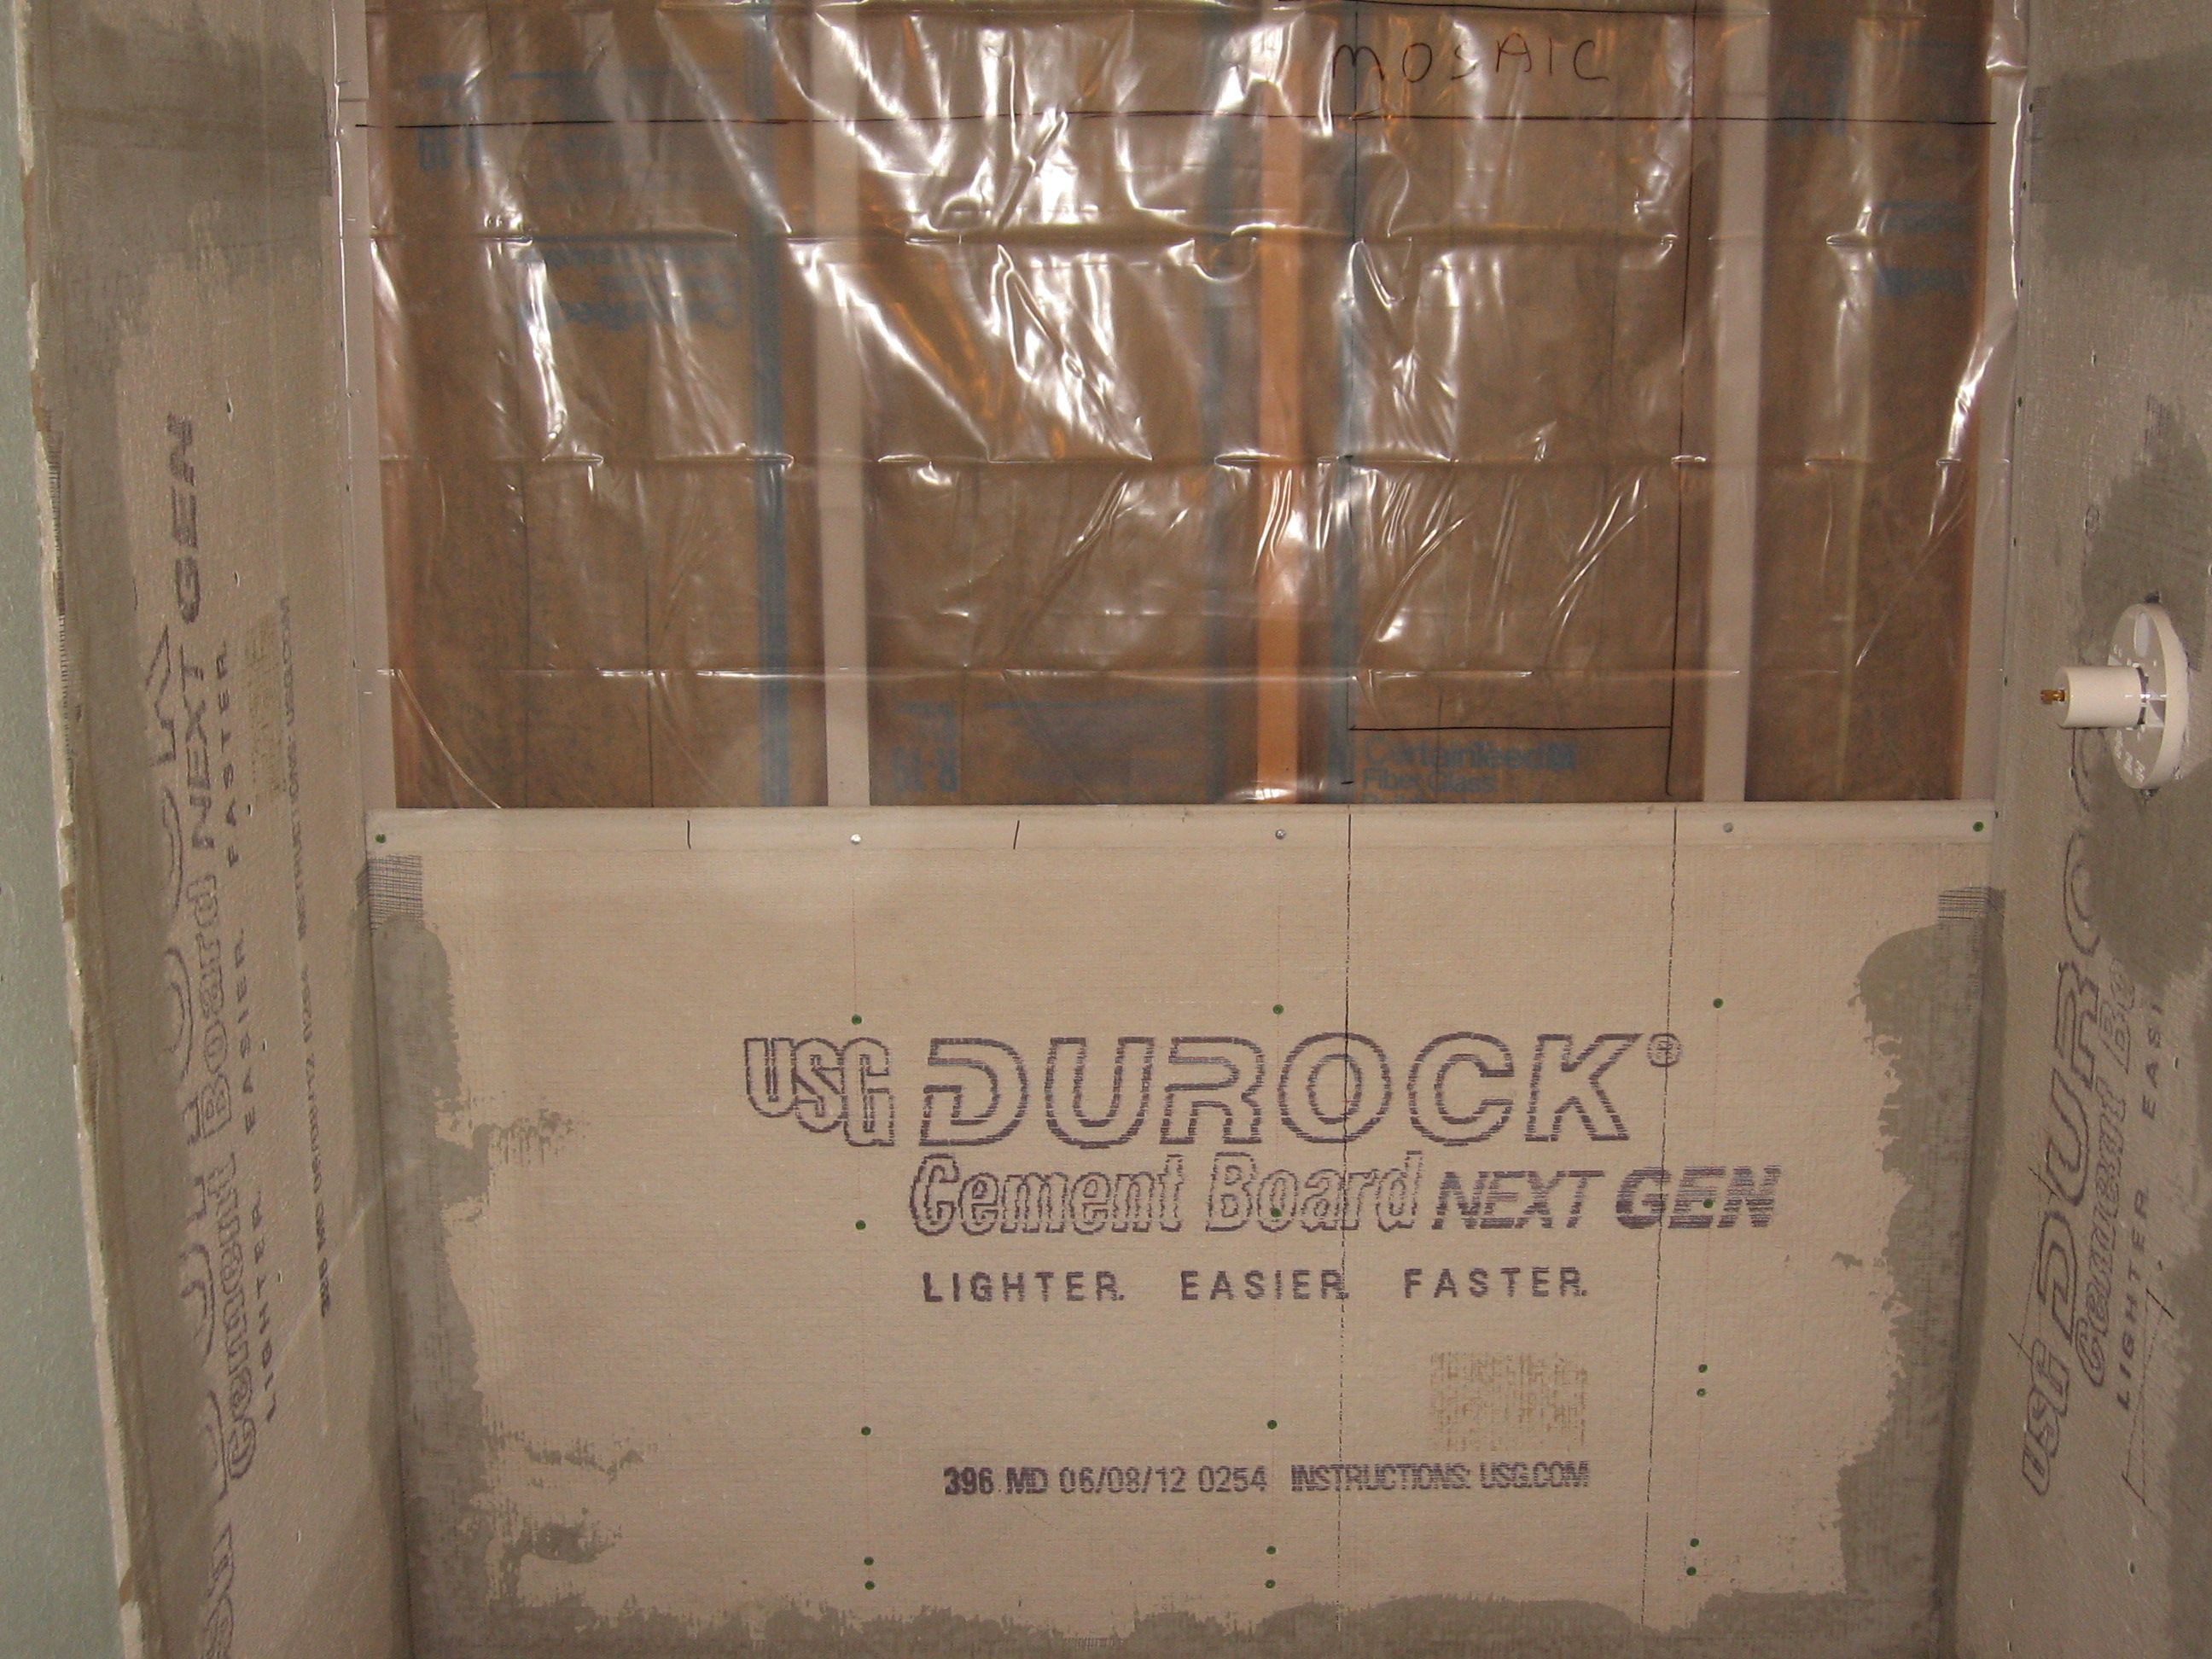 tiling a shower | Conventional Shower Construction with Durock ...